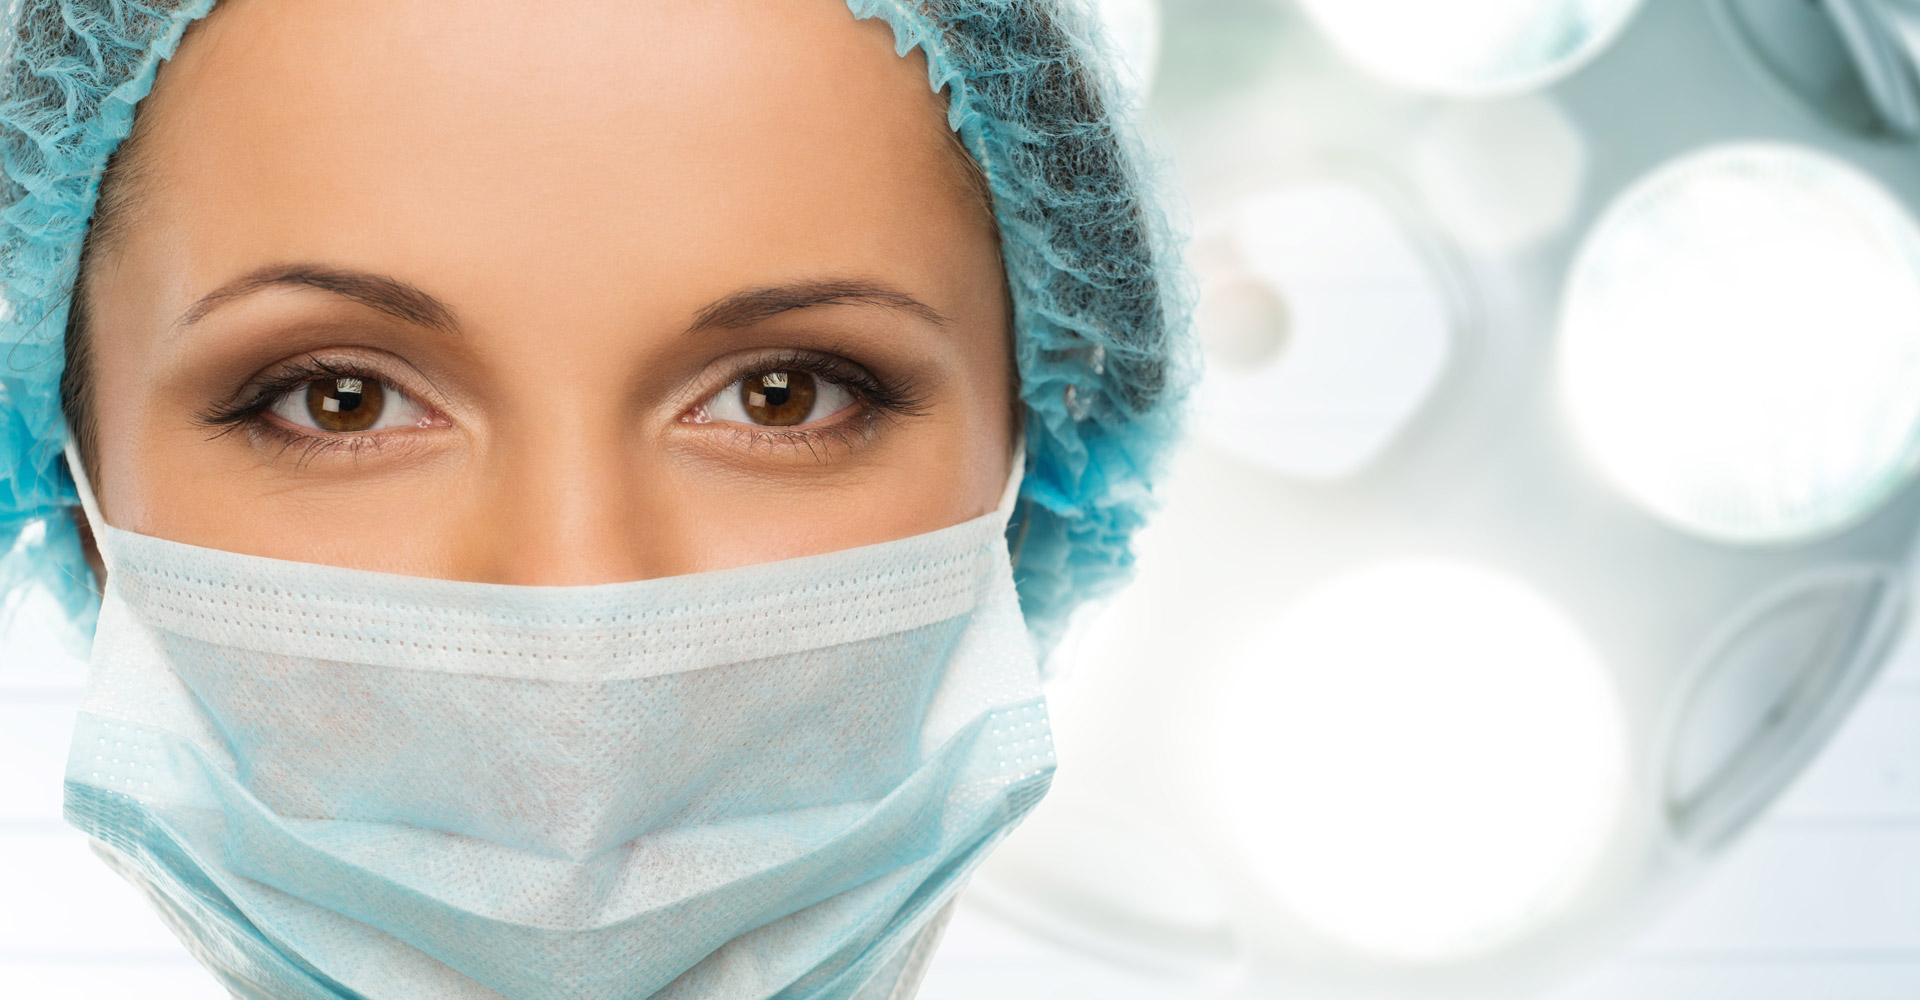 Image of doctor with surgical mask on